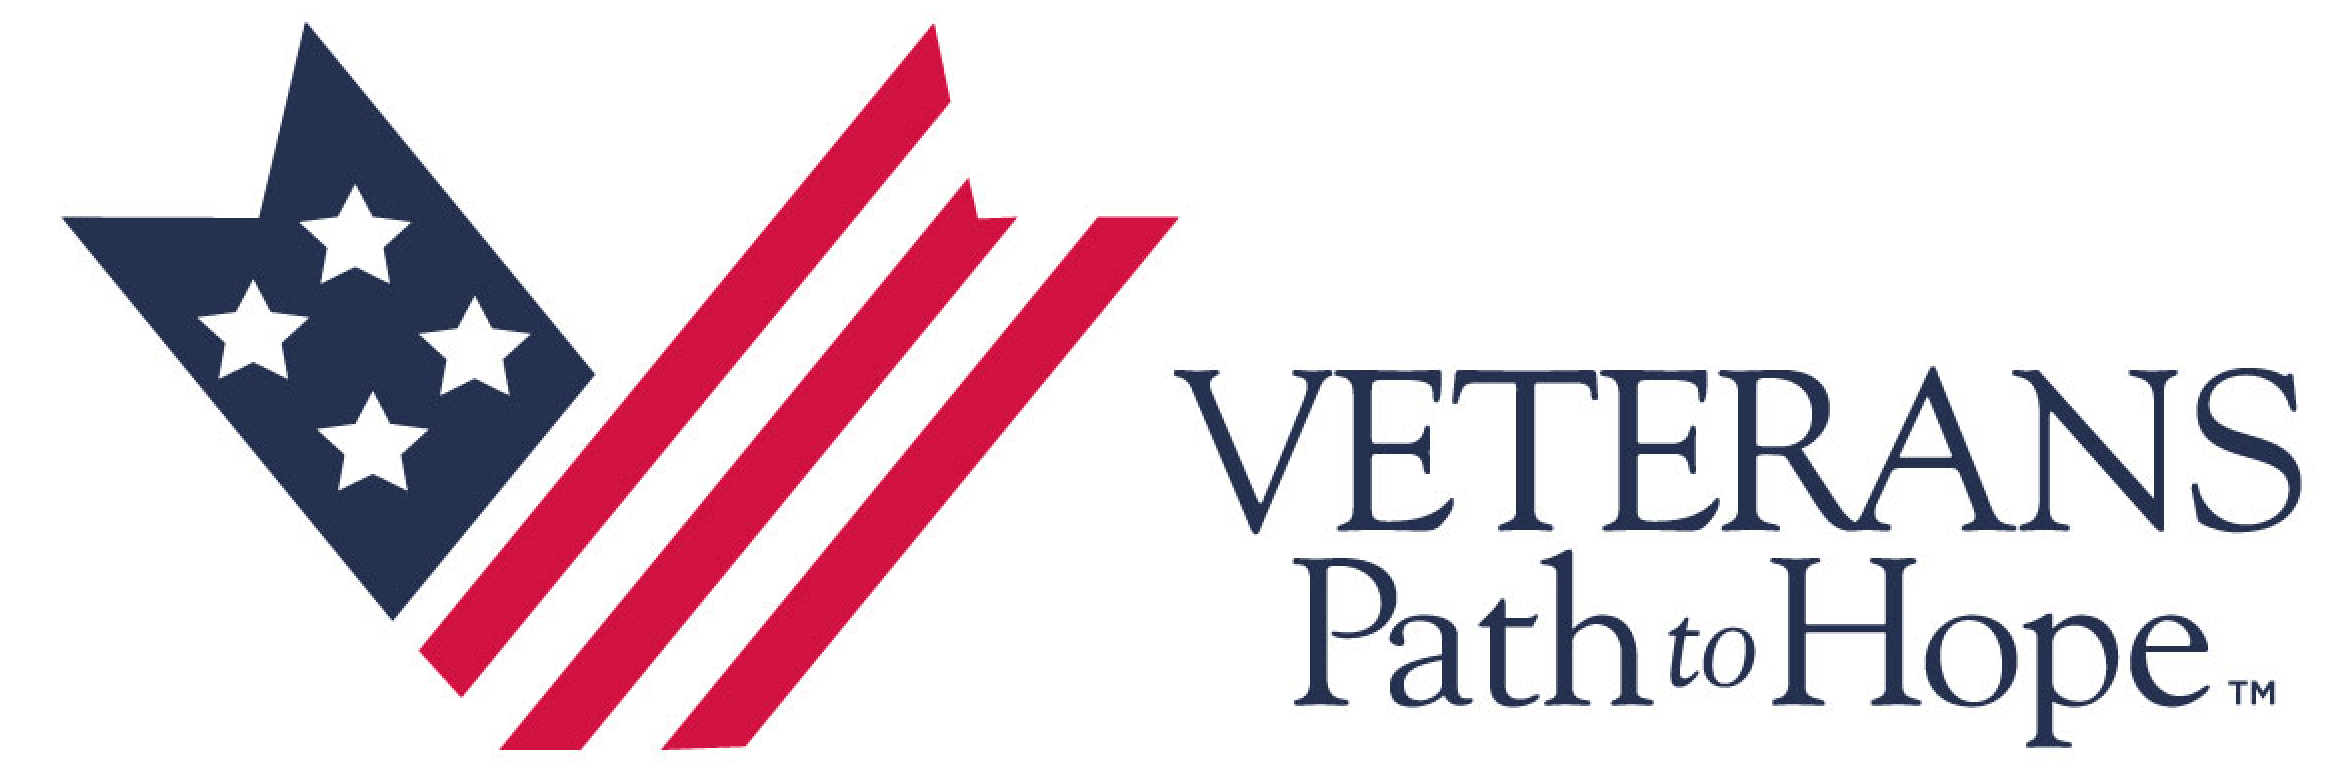 Veterans Path to Hope